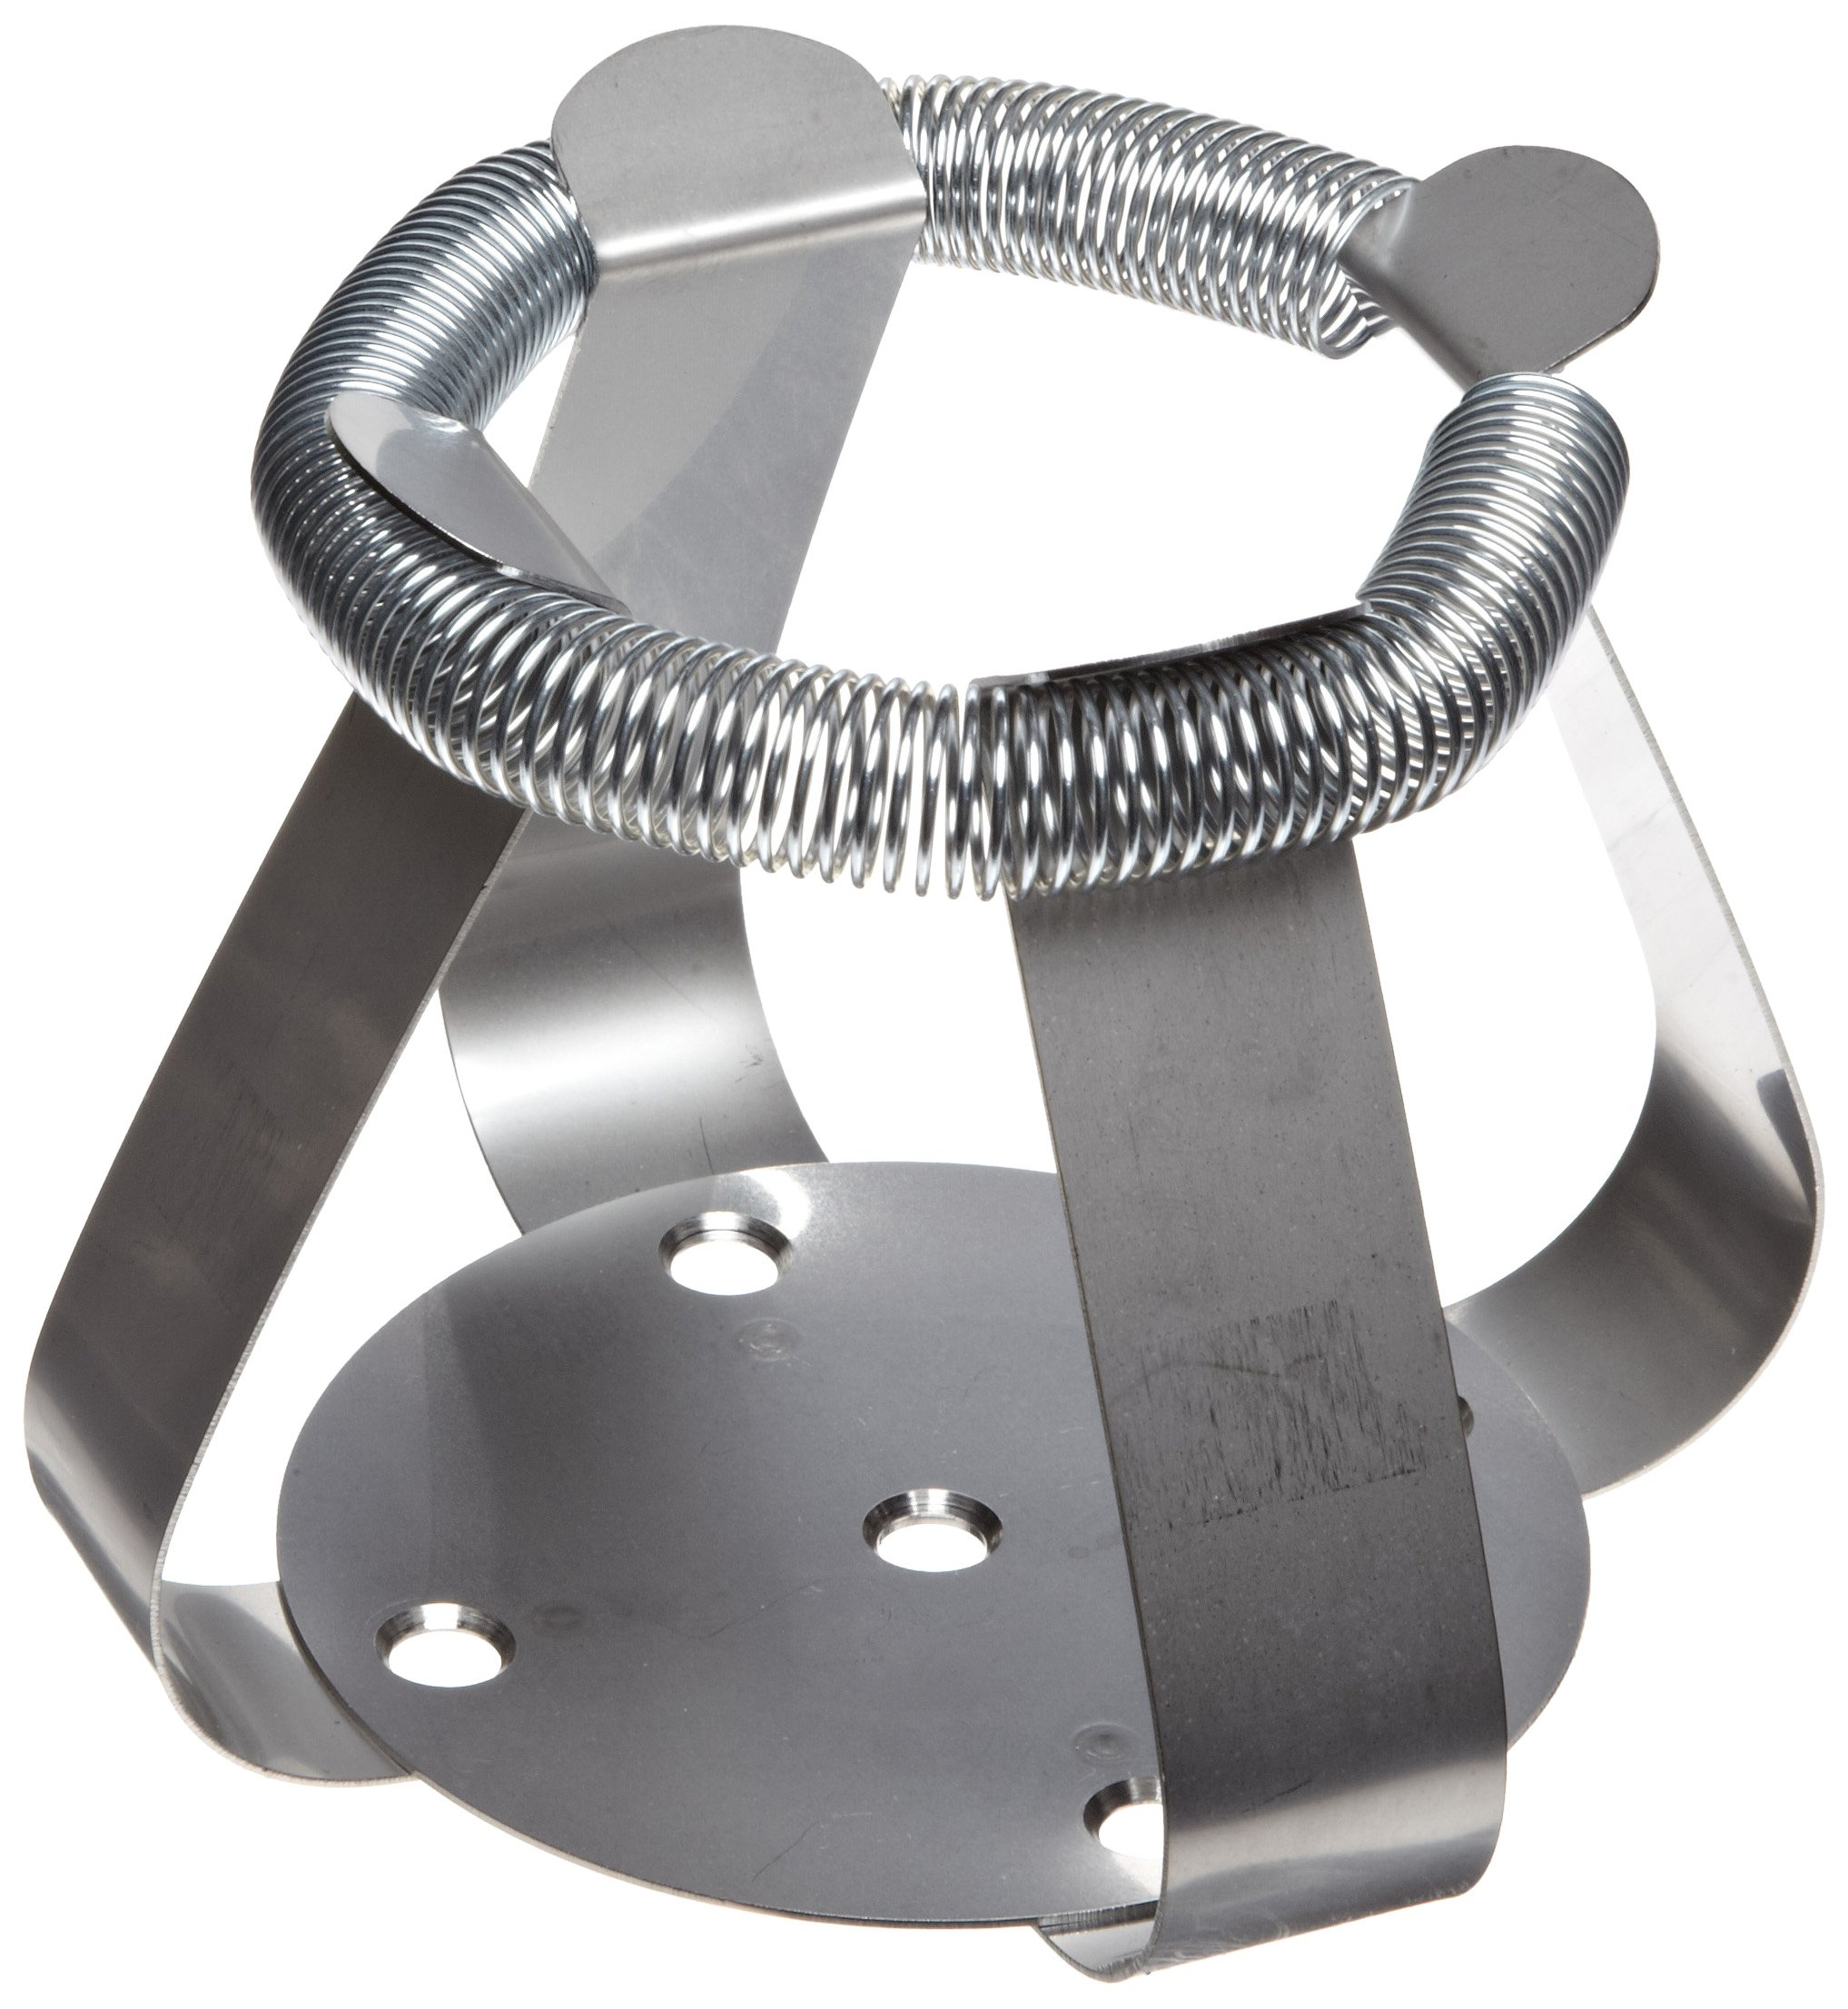 Talboys 980086 Flask Clamp, Stainless Steel, For 1L Erlenmeyer Flask by Talboys